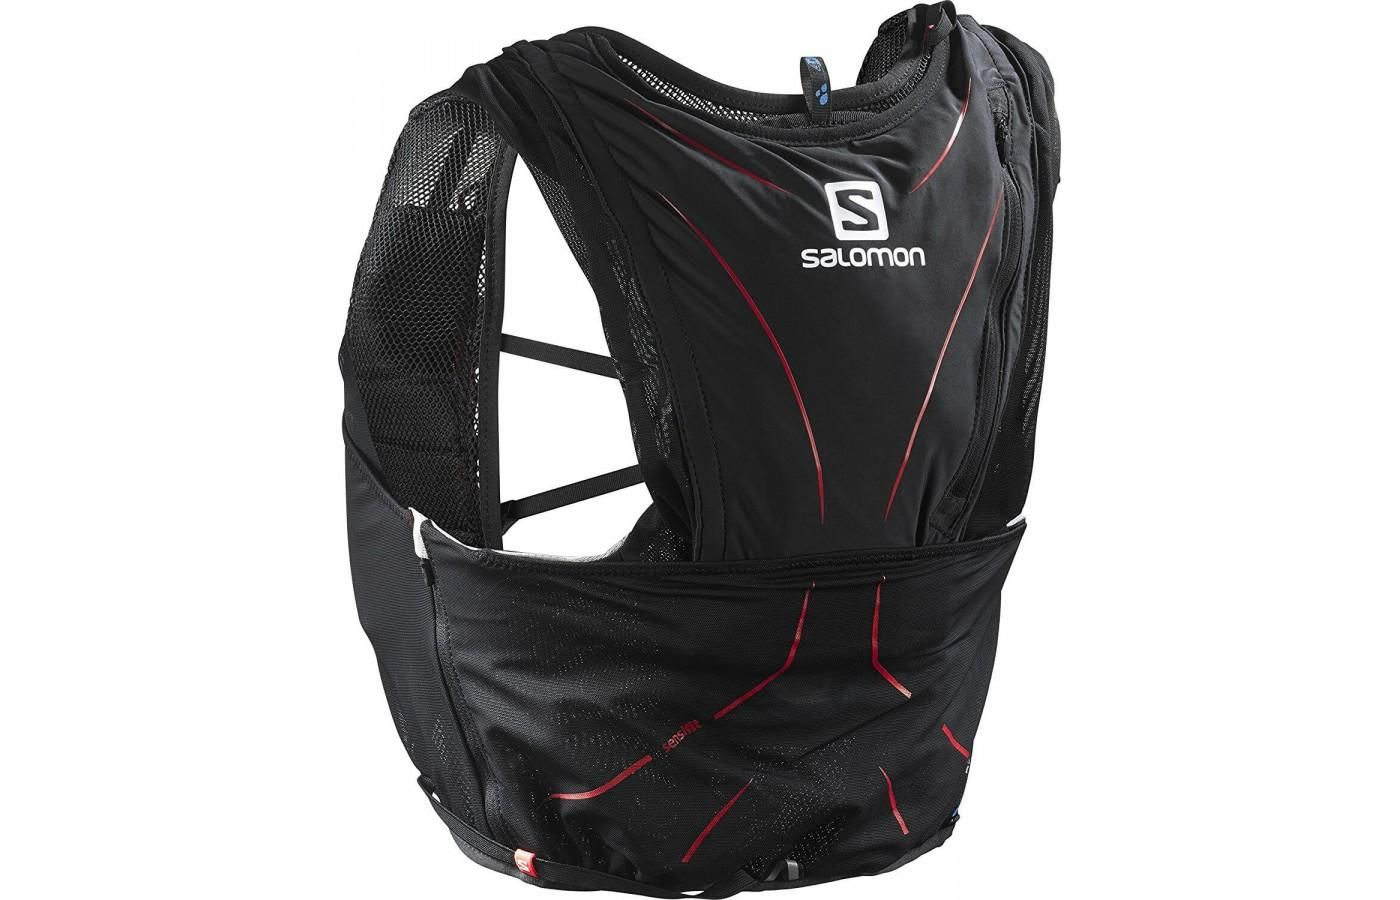 Salomon Adv Skin 12 Set Check More At Https Stripefit Com Salomon Adv Skin 12 Set Review Running Vest Running Clothes Hydration Pack